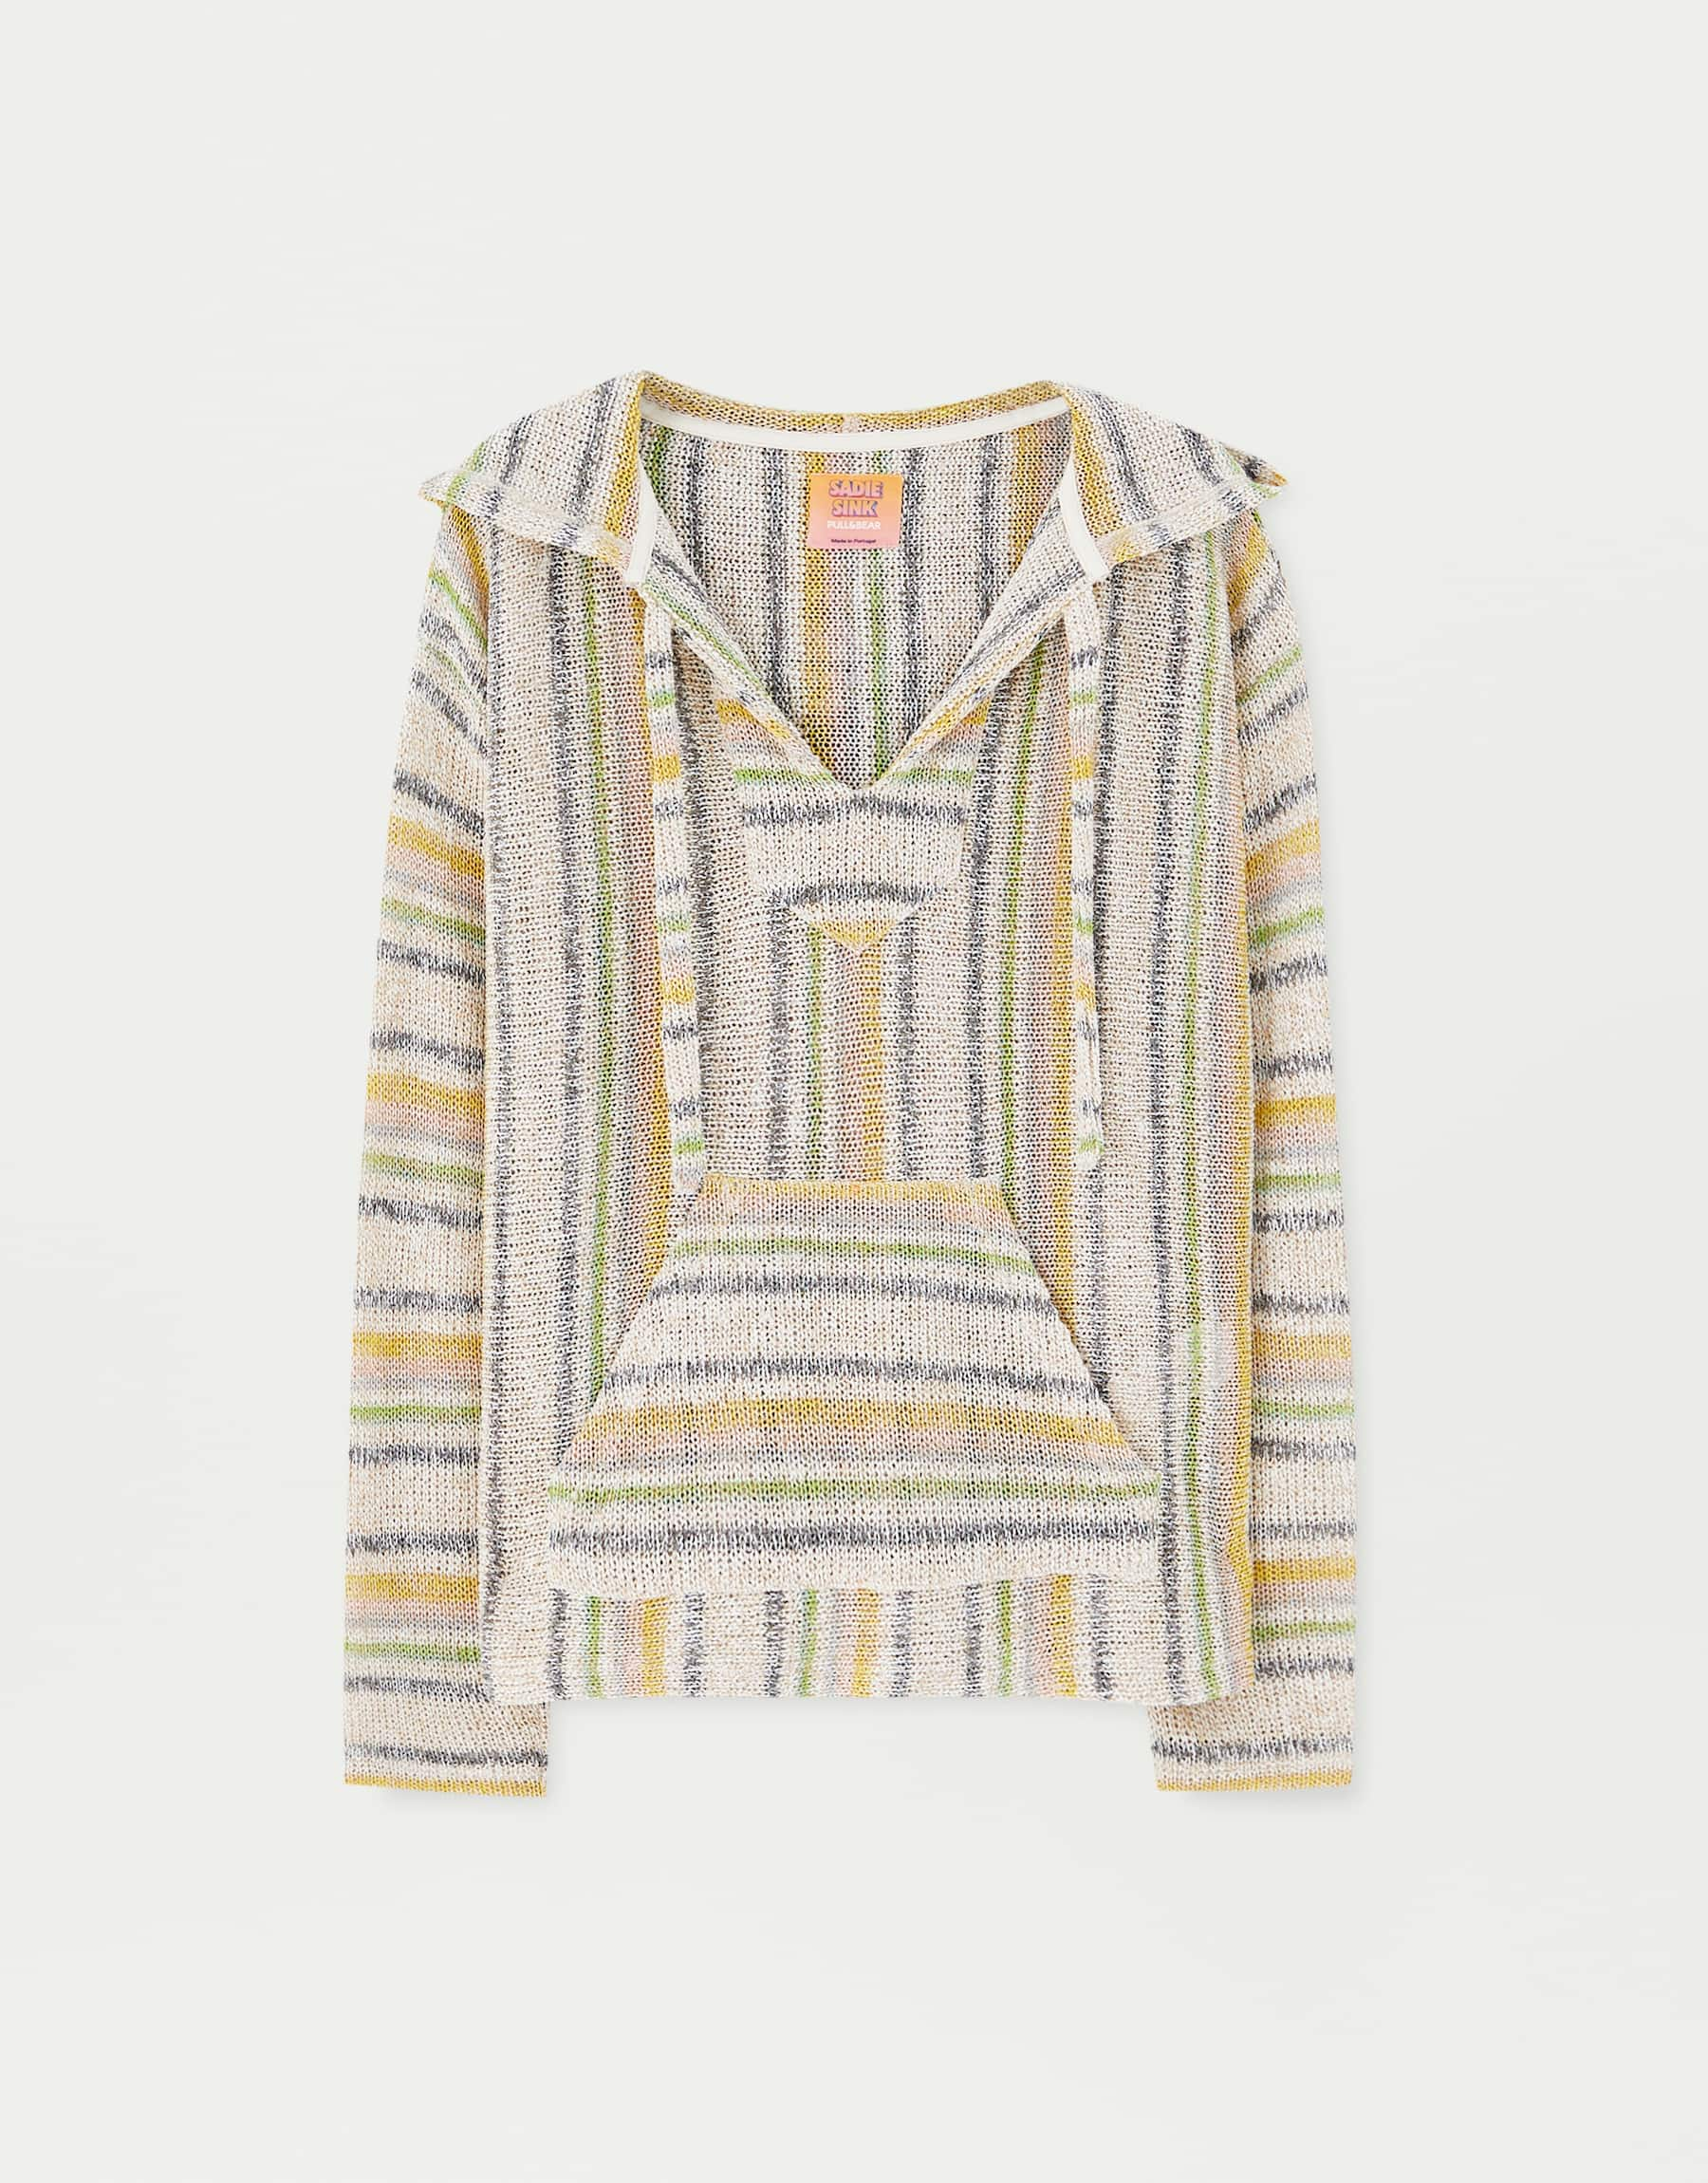 Sadie Sink Djellaba-Style Sweater, $59.90